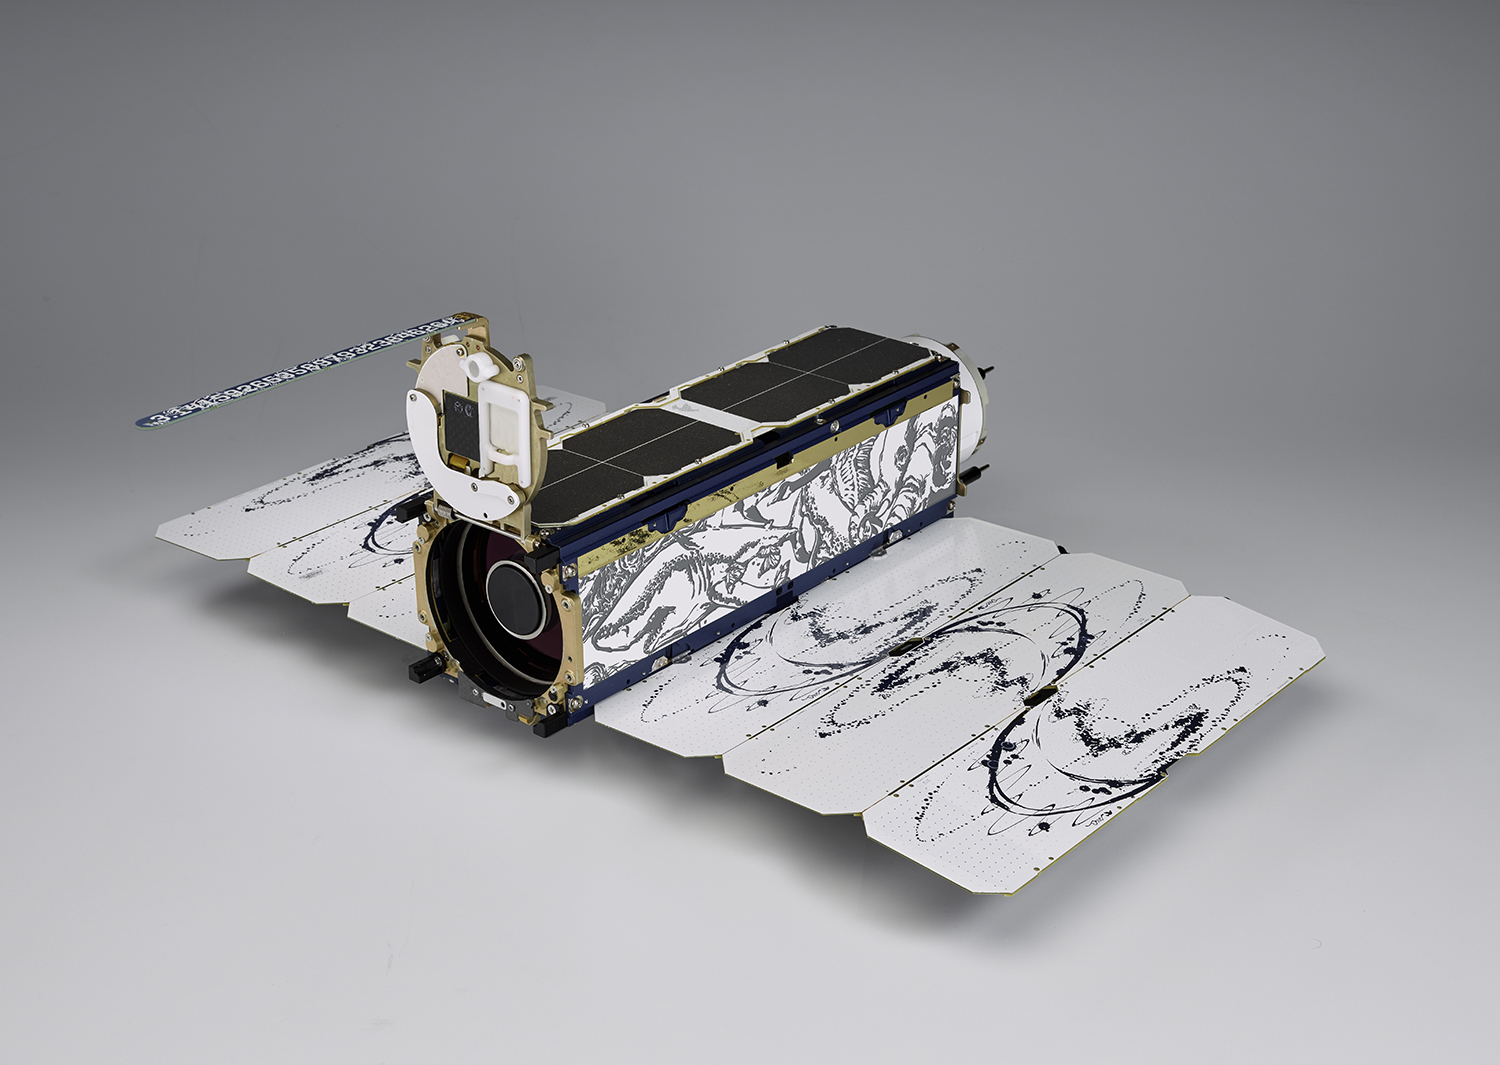 The Dove spacecraft that enables the PlanetScope dataset. Image courtesy of Planet.